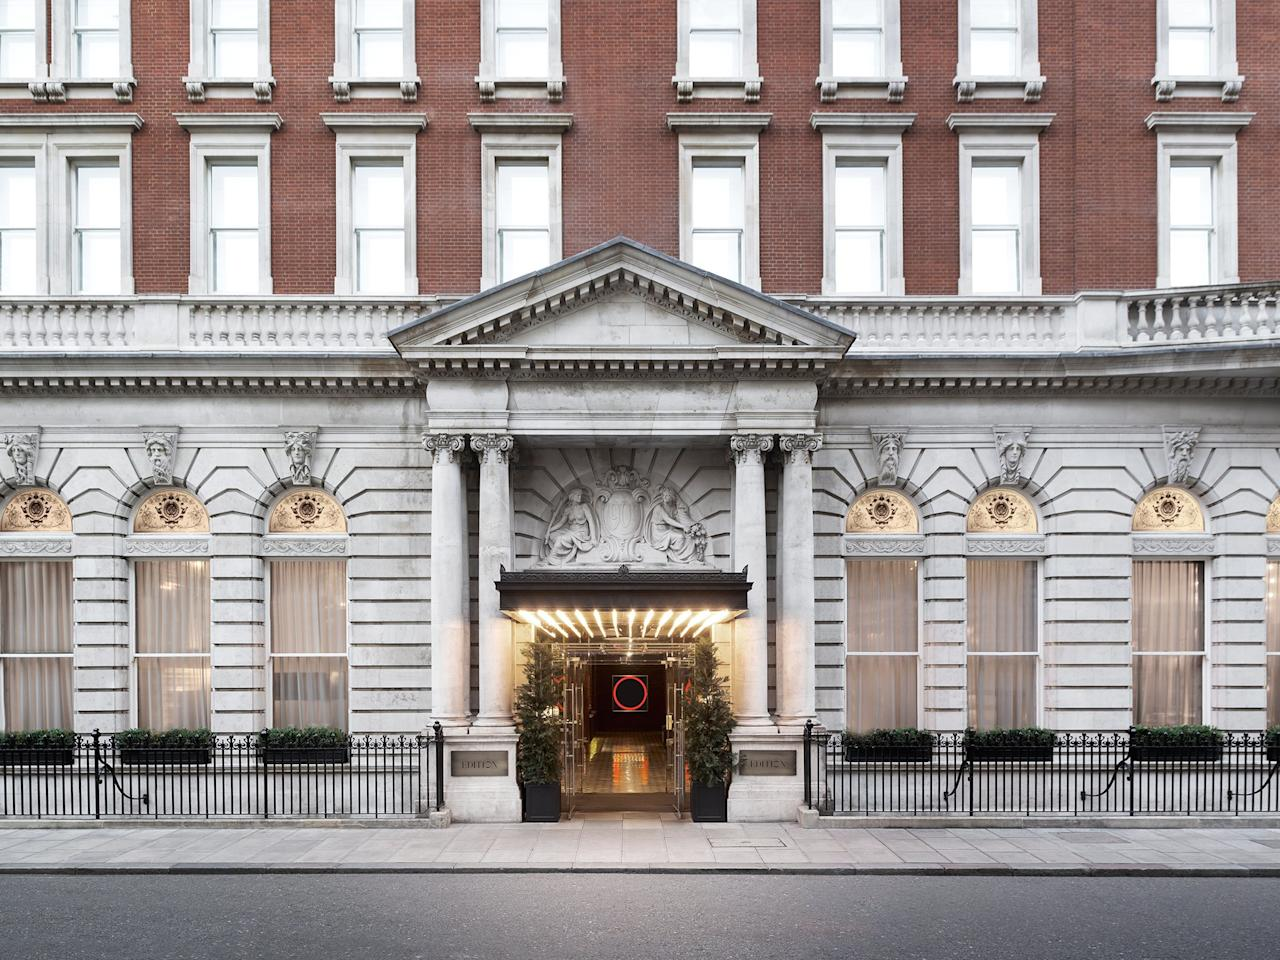 """<p><strong>How did it strike you on arrival?</strong><br> Ian Schrager is best known for Studio 54 in <a href=""""https://www.cntraveler.com/destinations/new-york-city?mbid=synd_yahoo_rss"""">New York</a> and launching the concept of boutique hotels, so unsurprisingly, walking into this property feels like joining the party. The lobby is also the bar, with a billiards table, lofty stucco ceiling, giant chrome egg dangling from it, and open fire—there'll be loud chatter over gin and tonics and people reclining on sofas pretending to work on their MacBooks. It's an entertaining mix of bright young things, finance swells, and hipster guests. And no wonder: The hotel, along with being one of London's most stylish spots right now, is home to the Punch Room, one of the hottest clubs in town, located in the middle of Fitzrovia.</p> <p><strong>What's the crowd like?</strong><br> The glamorous, sociable kind. This hotel is all about moving and shaking in the impressive communal spaces.</p> <p><strong>The good stuff: Tell us about your room.</strong><br> Schrager has partnered with Marriott to launch the Edition brand and, as such, the rooms don't vary much, except for size. They're good, though: White walls and linen are warmed up by oak floors and paneling, along with faux fur throws. The smallest of the rooms feel a touch shoebox, although all have a slim desk, a lounge chair, and a Hendriks Kerstens photograph, inspired by portraits by Dutch masters.</p> <p><strong>We're craving some deep, restorative sleep. They got us?</strong><br> If you like the super-soft linen you can buy it (along with the bed and most other things you can lay your hands on) from the <a href=""""http://www.shopedition.com"""">online shop</a>.</p> <p><strong>How about the little things, like mini bar, or shower goodies. Any of that find its way into your suitcase?</strong><br> The minibars are imaginative, including iced coffee and earl grey tea lip balm instead of boring Britvic.</p> <p><strong>Please tell us """